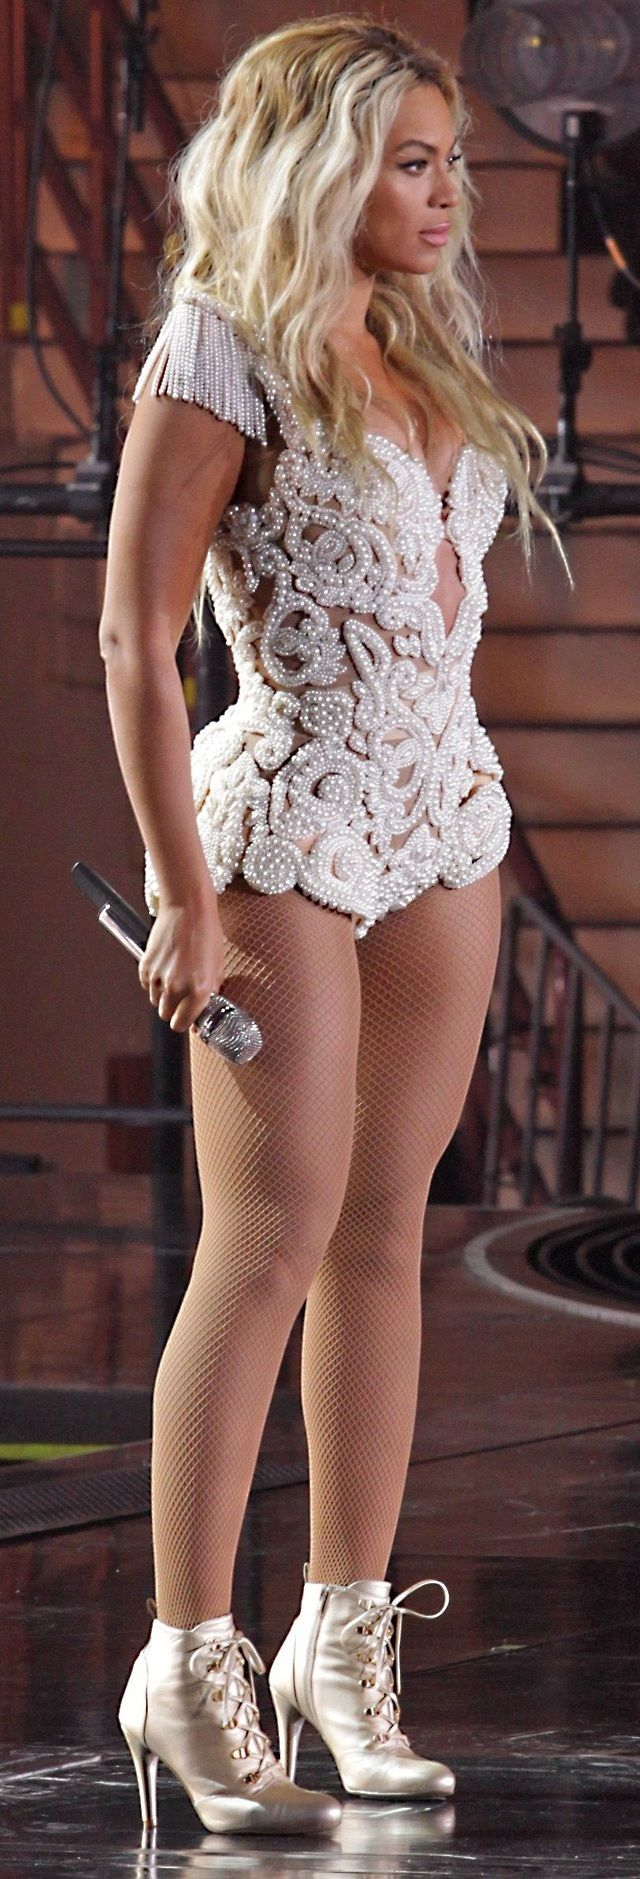 Once upon a Time there was. ..a real Queen by the name Beyonce. Gorgeous!